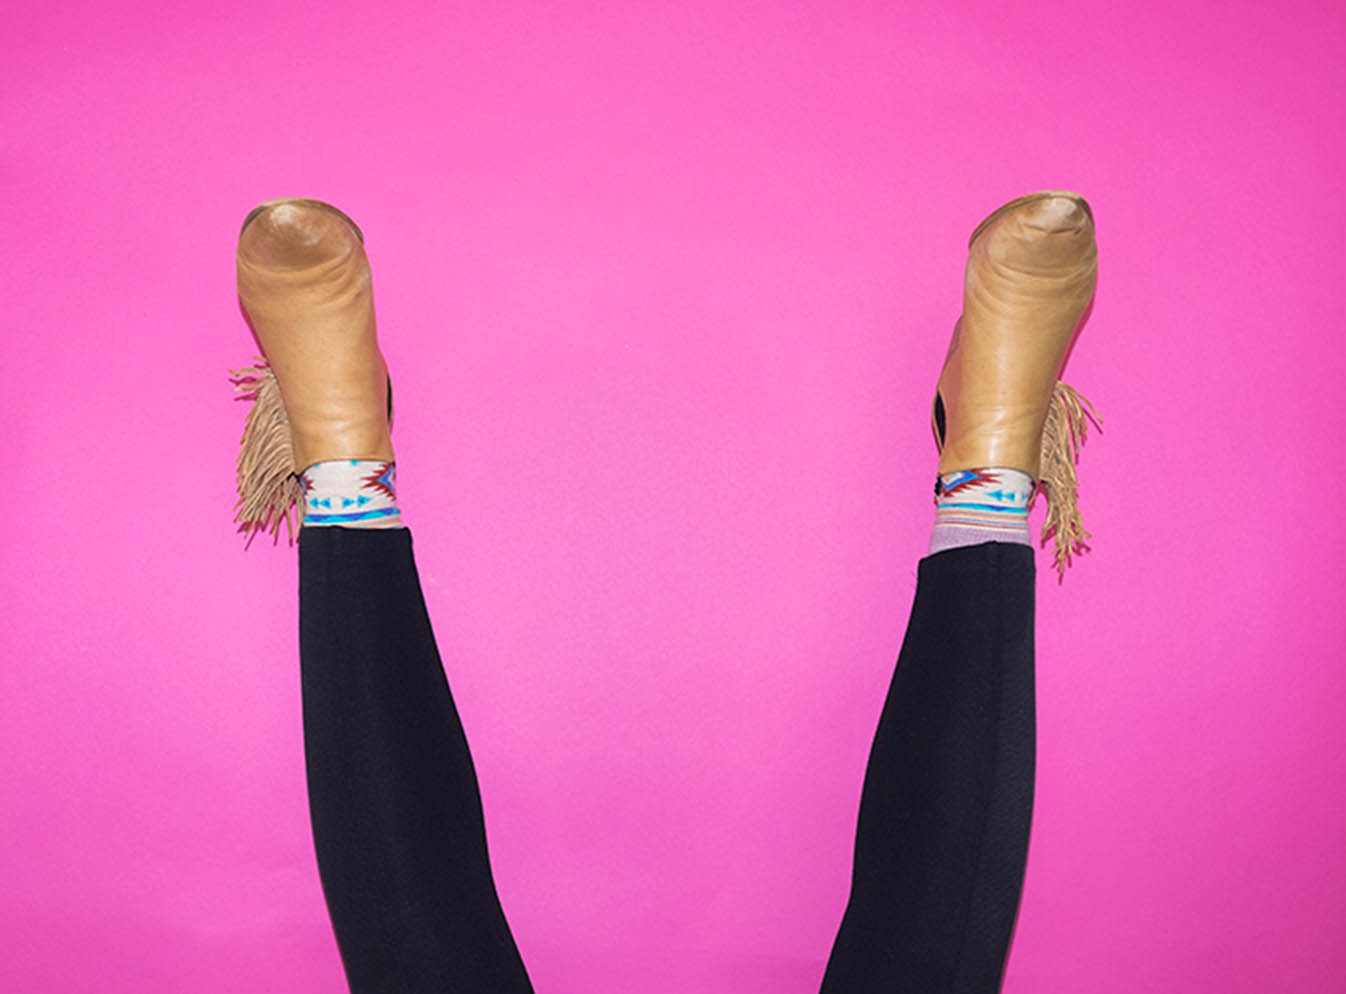 Legs on pink background